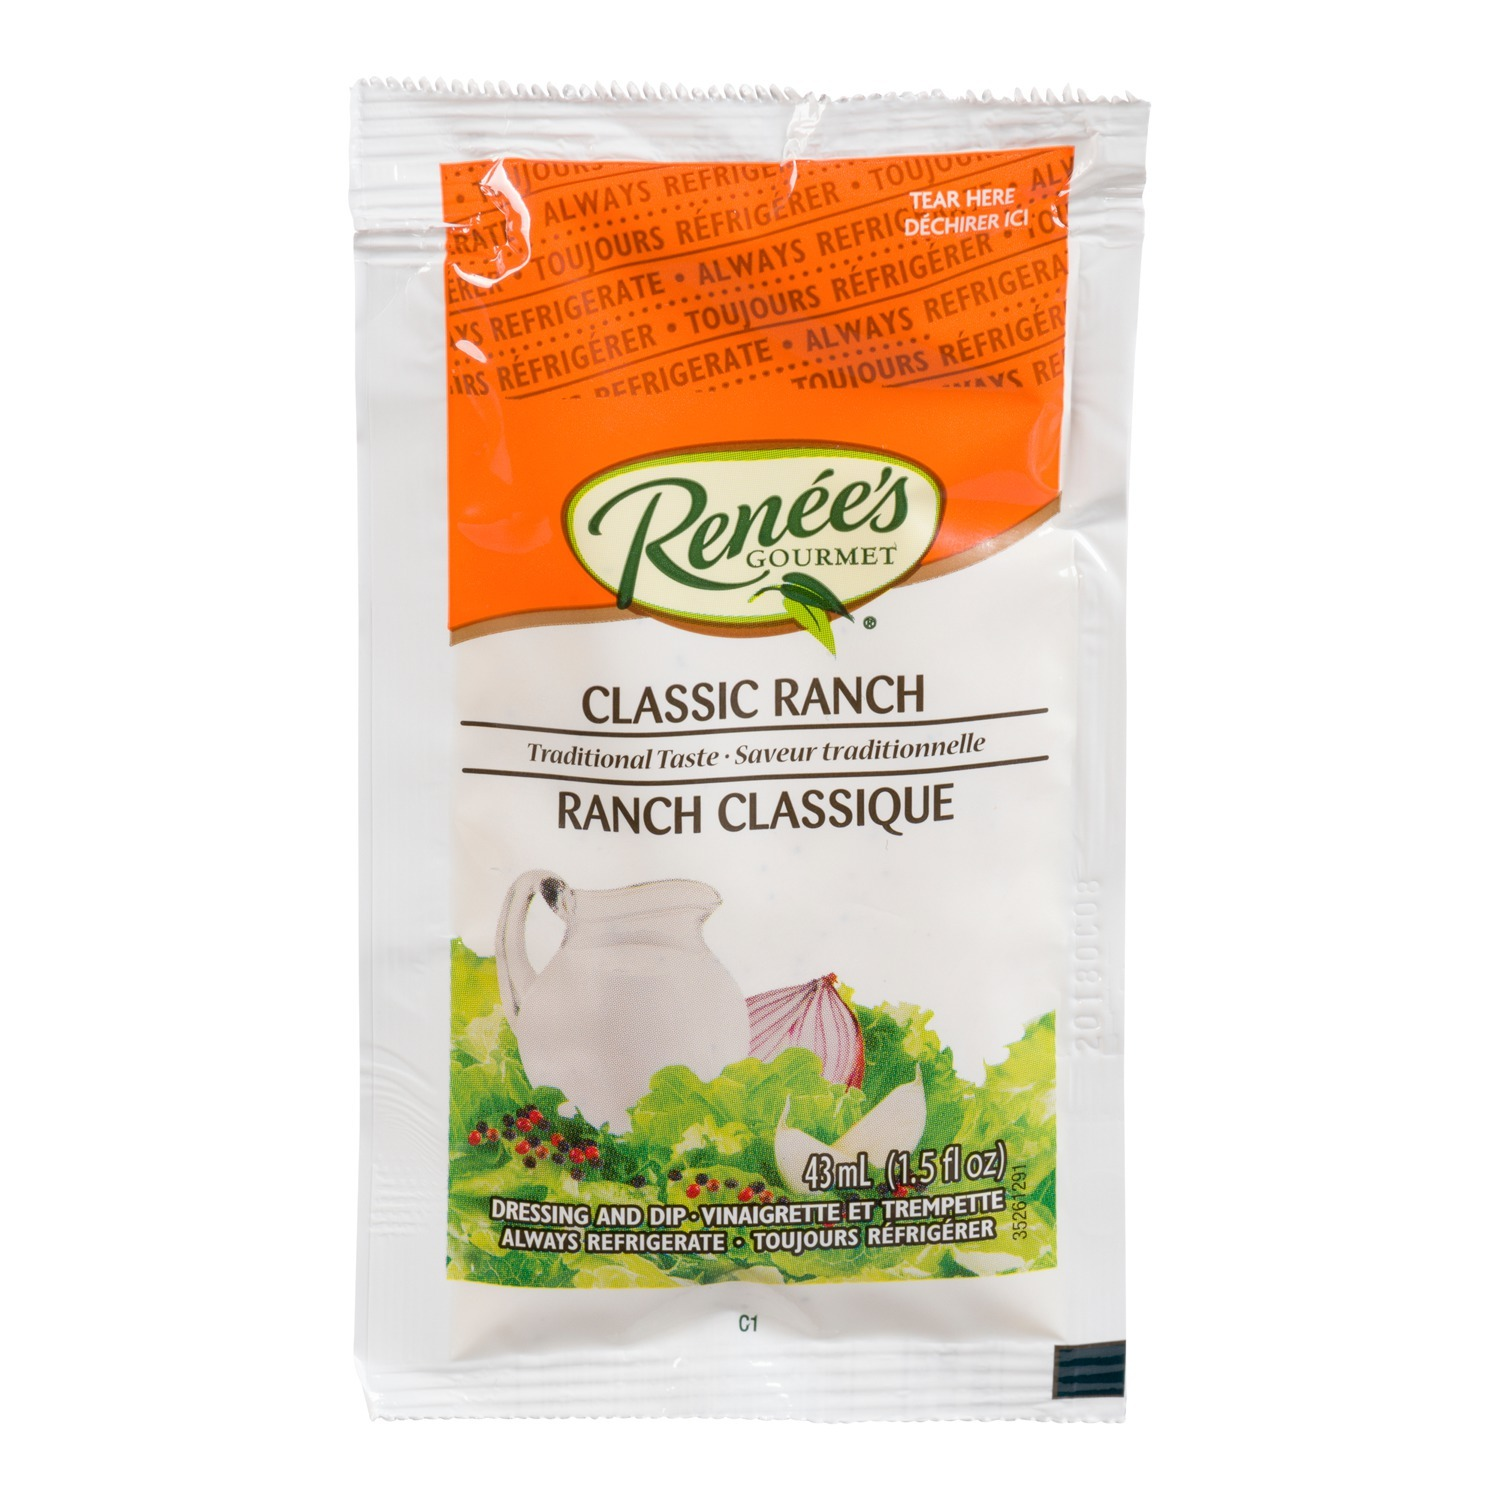 RENÉE'S Classic Ranch Dressing 43ml 120